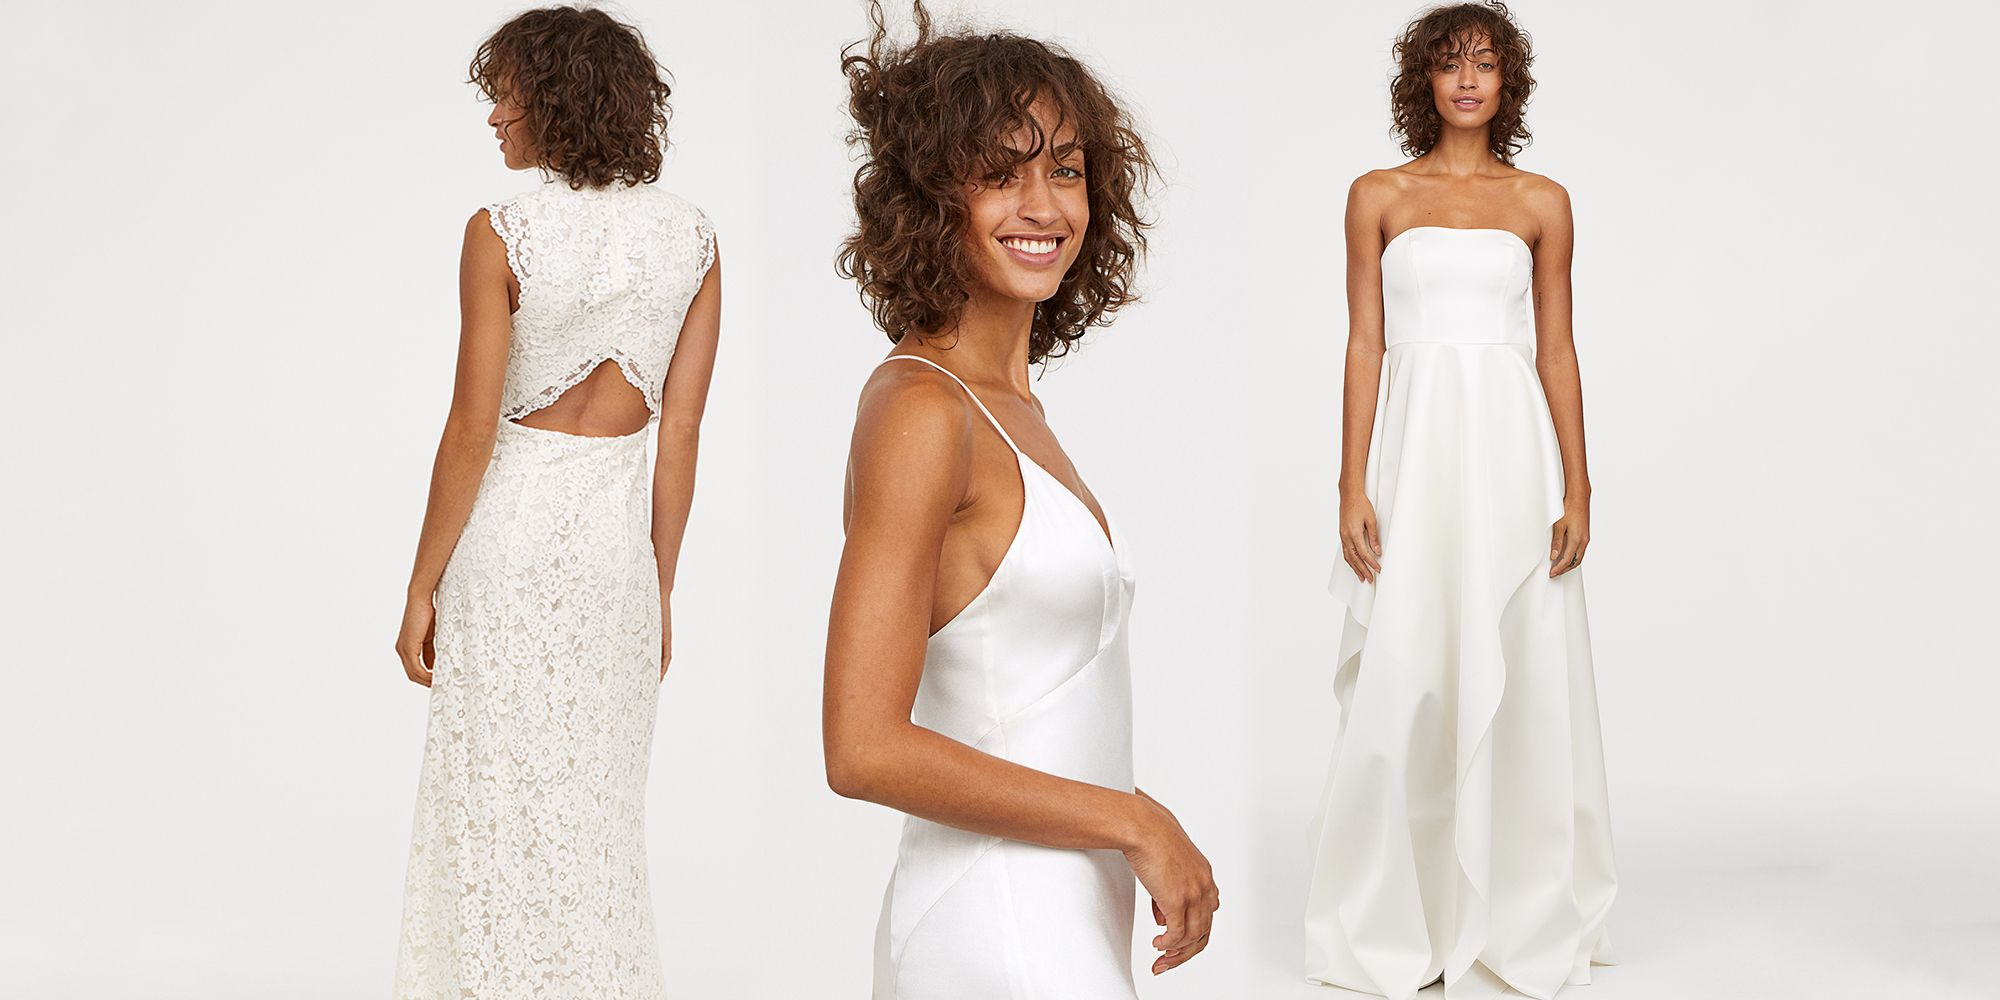 20 High Street Wedding Dresses Youll Love High Street Brands That